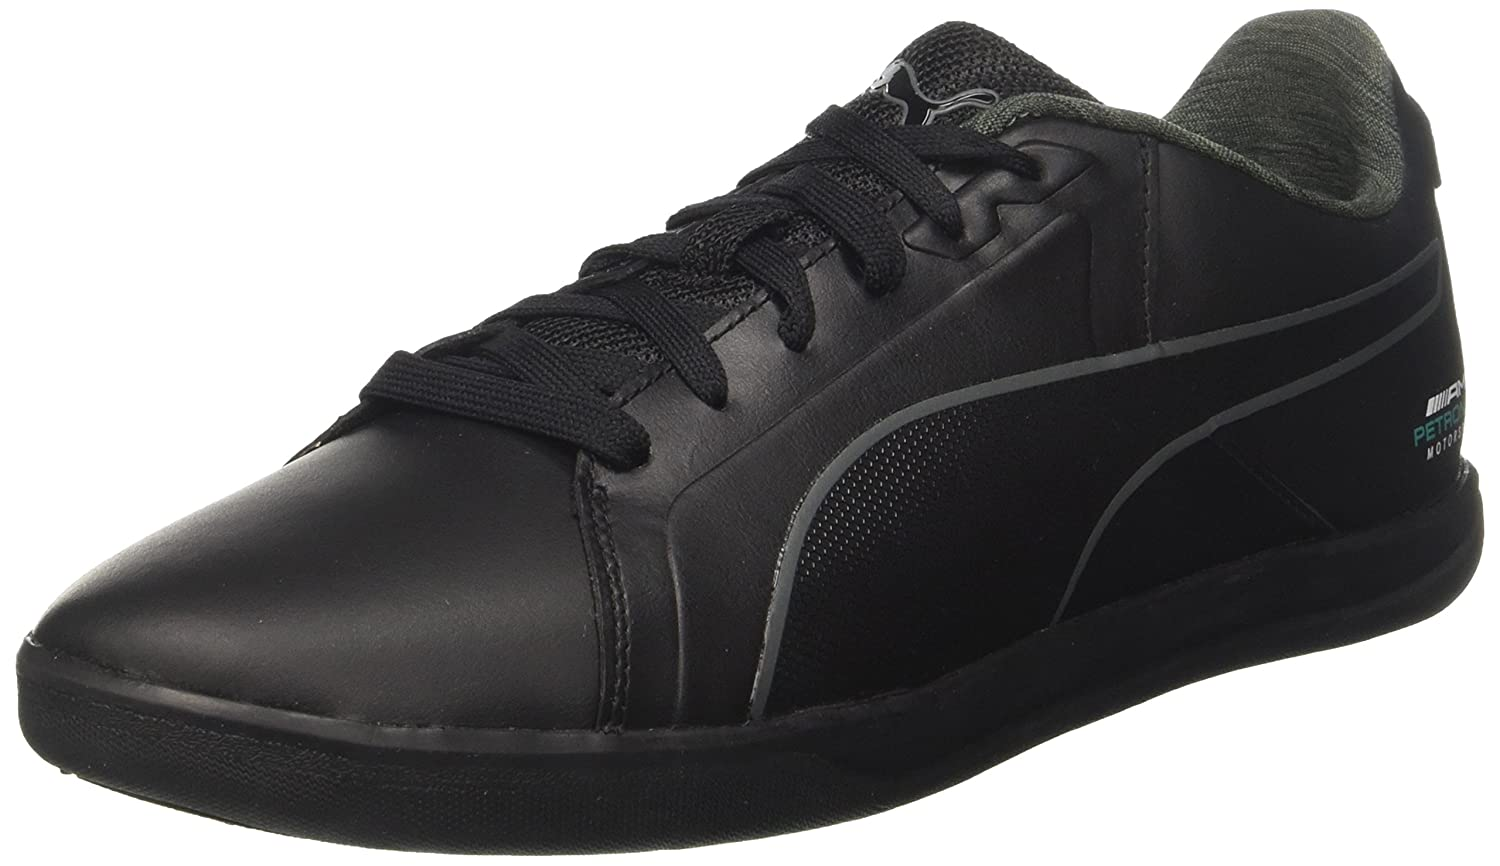 Puma Men's MAMGP Court Sneakers